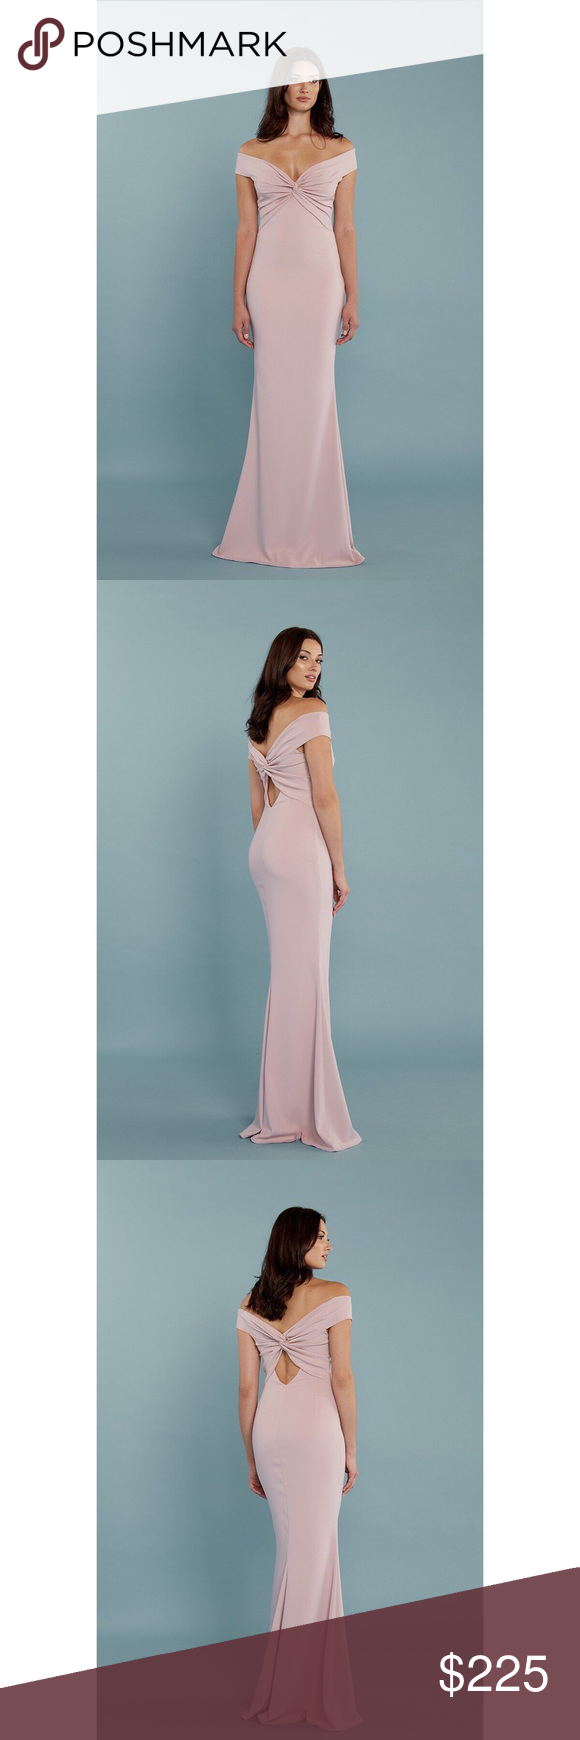 37f68d8baee Katie May Liu Bridesmaid Gown in Dusty Rose Knotted off-shoulder fitted gown  with cut-out back detail. This style is exclusive to Bella Bridesmaids.